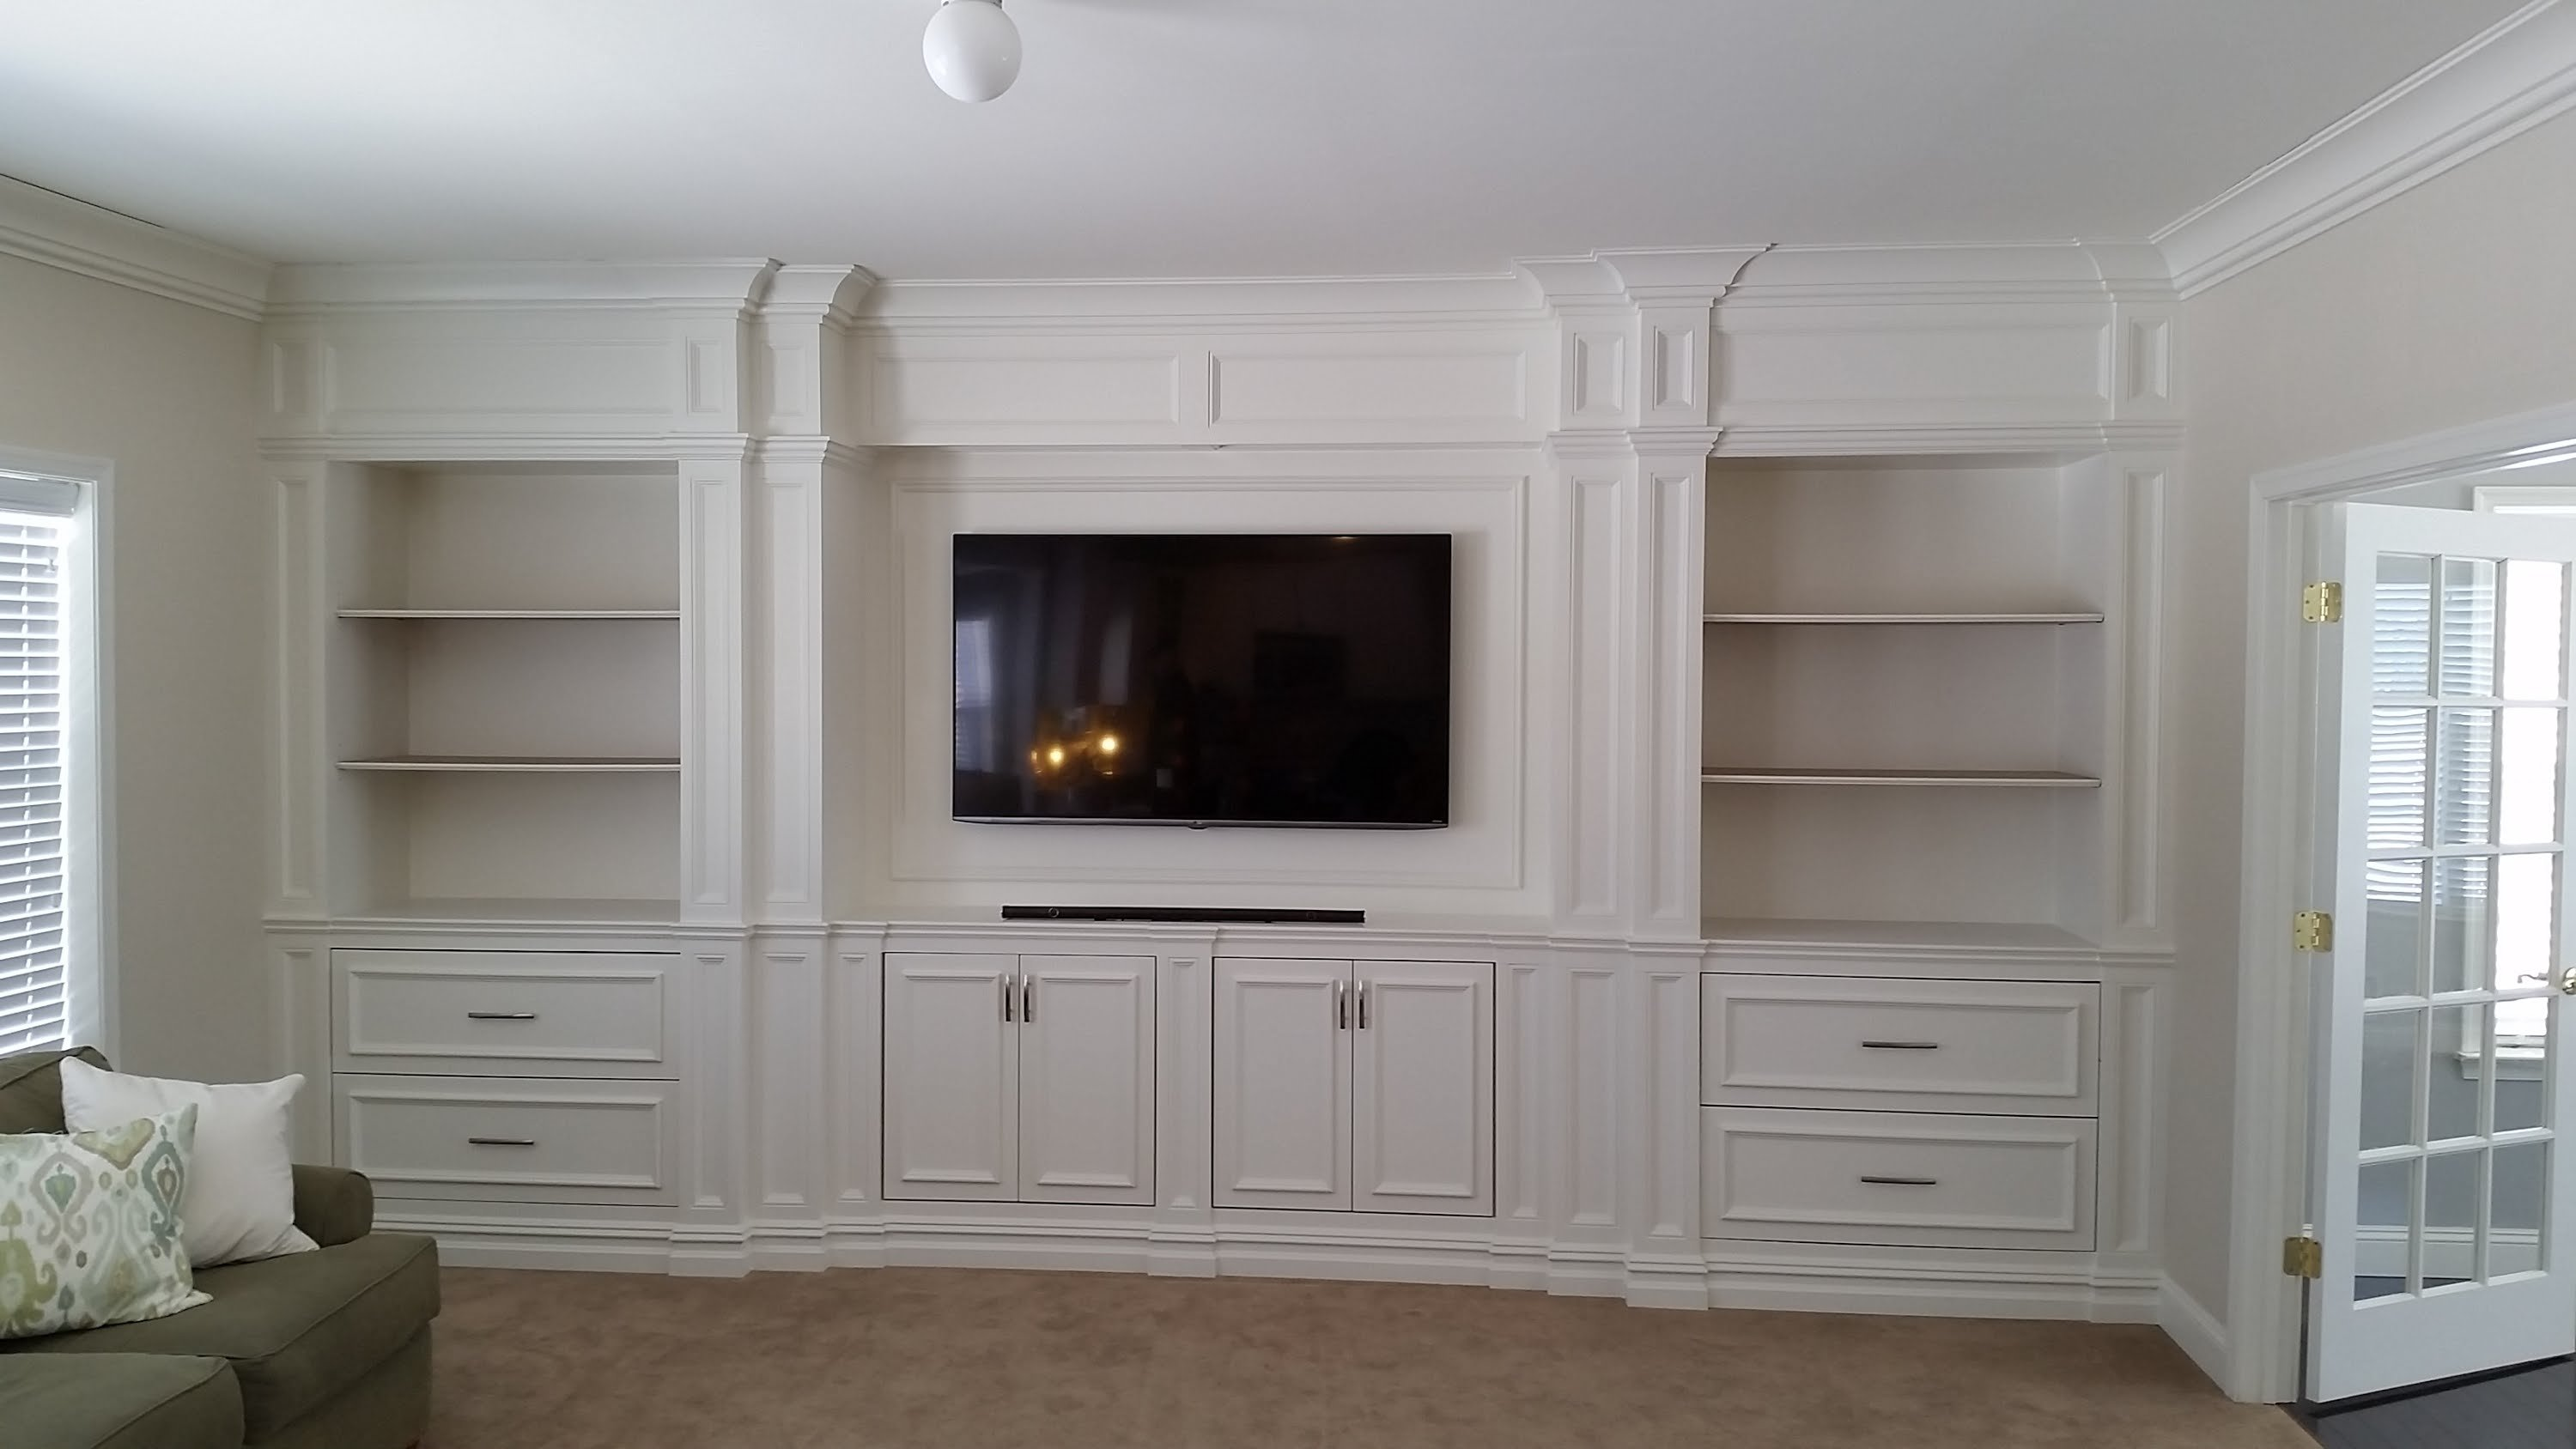 10 Awesome Built In Entertainment Center Ideas wall units built in entertainment centers ideas entertainment 2020